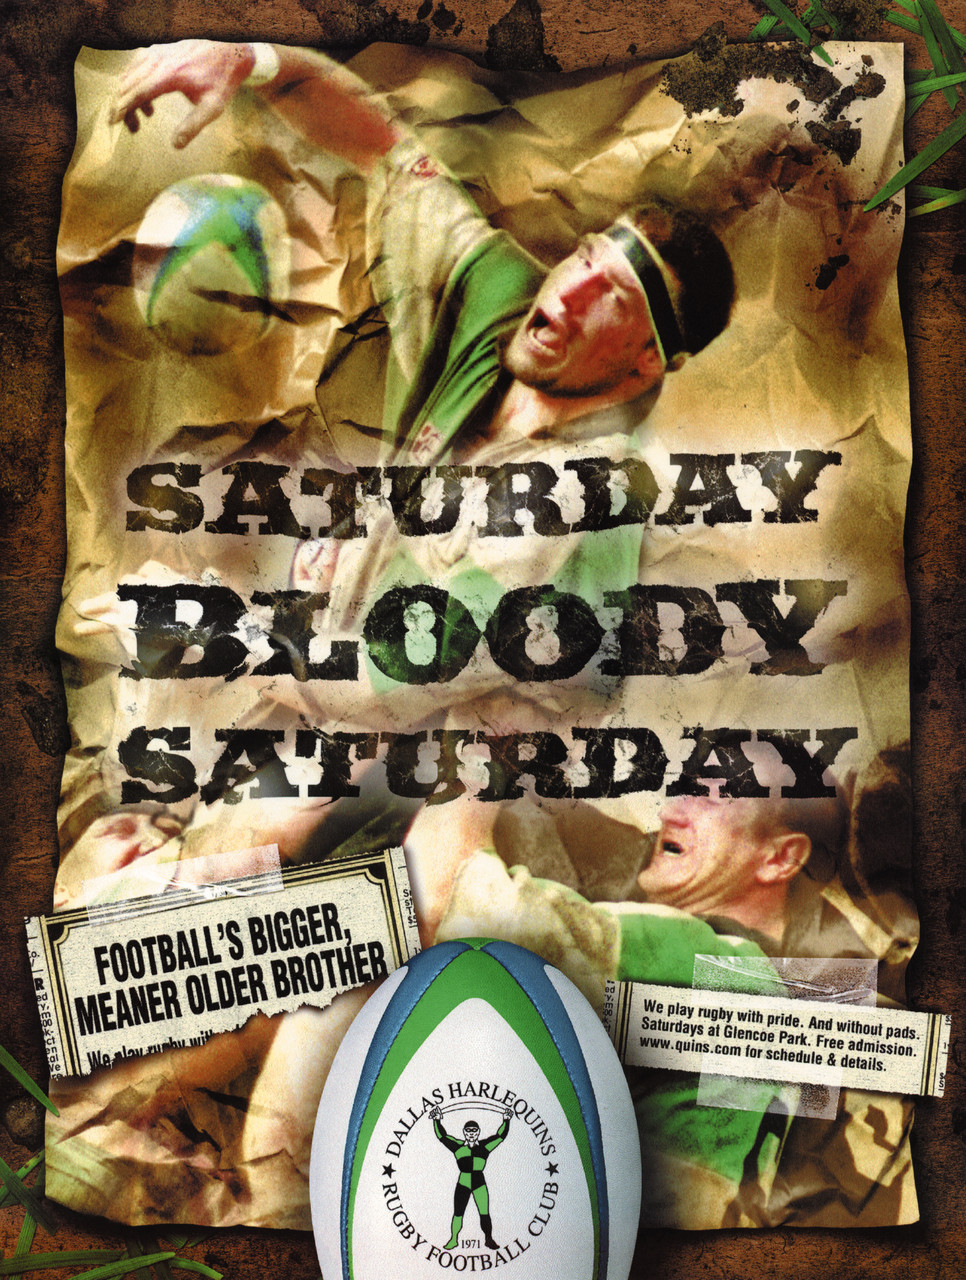 Poster for the Dallas Harlequins Rugby Club.